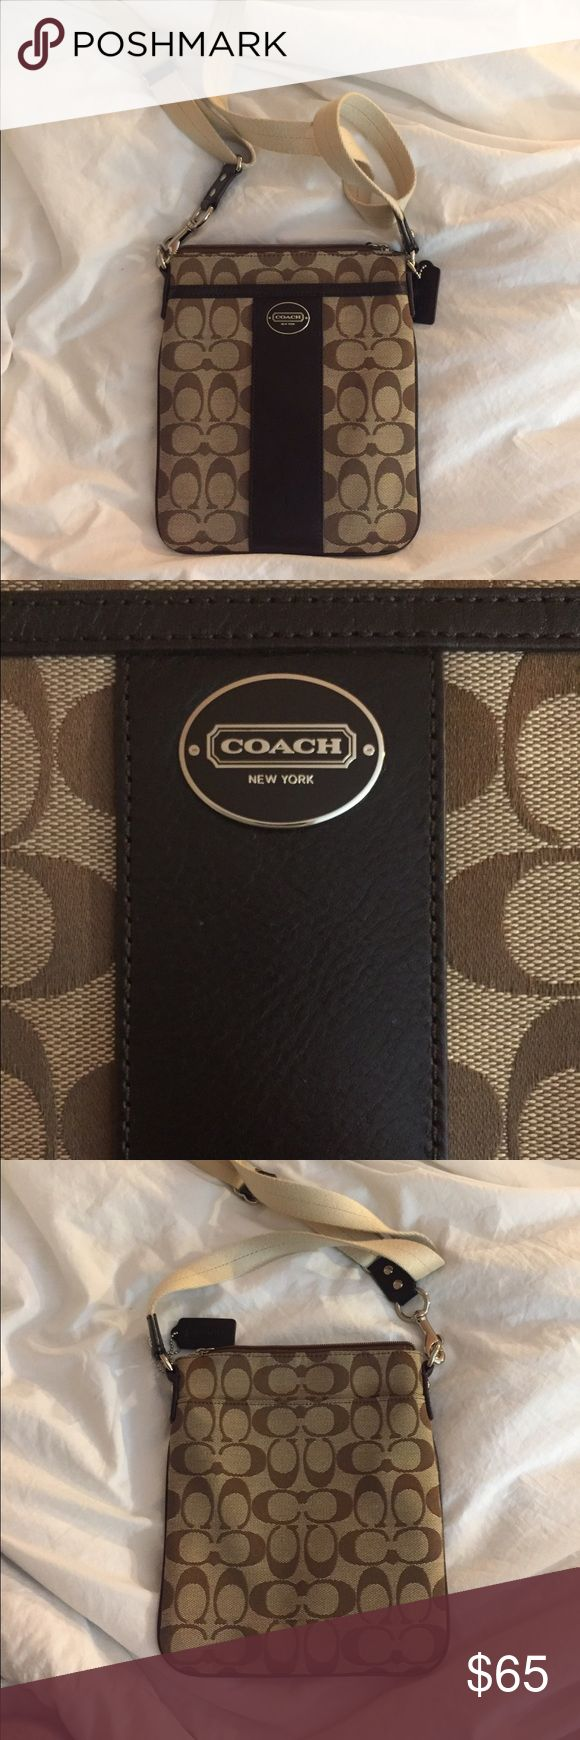 Coach Swingpack in signature fabric | make offer A timeless classic bag in near perfect condition with only one tiny dot stain near middle (see picture). This bag was only worn once or twice. Neutral fabric goes with any outfit! Make me an offer!!! Coach Bags Crossbody Bags